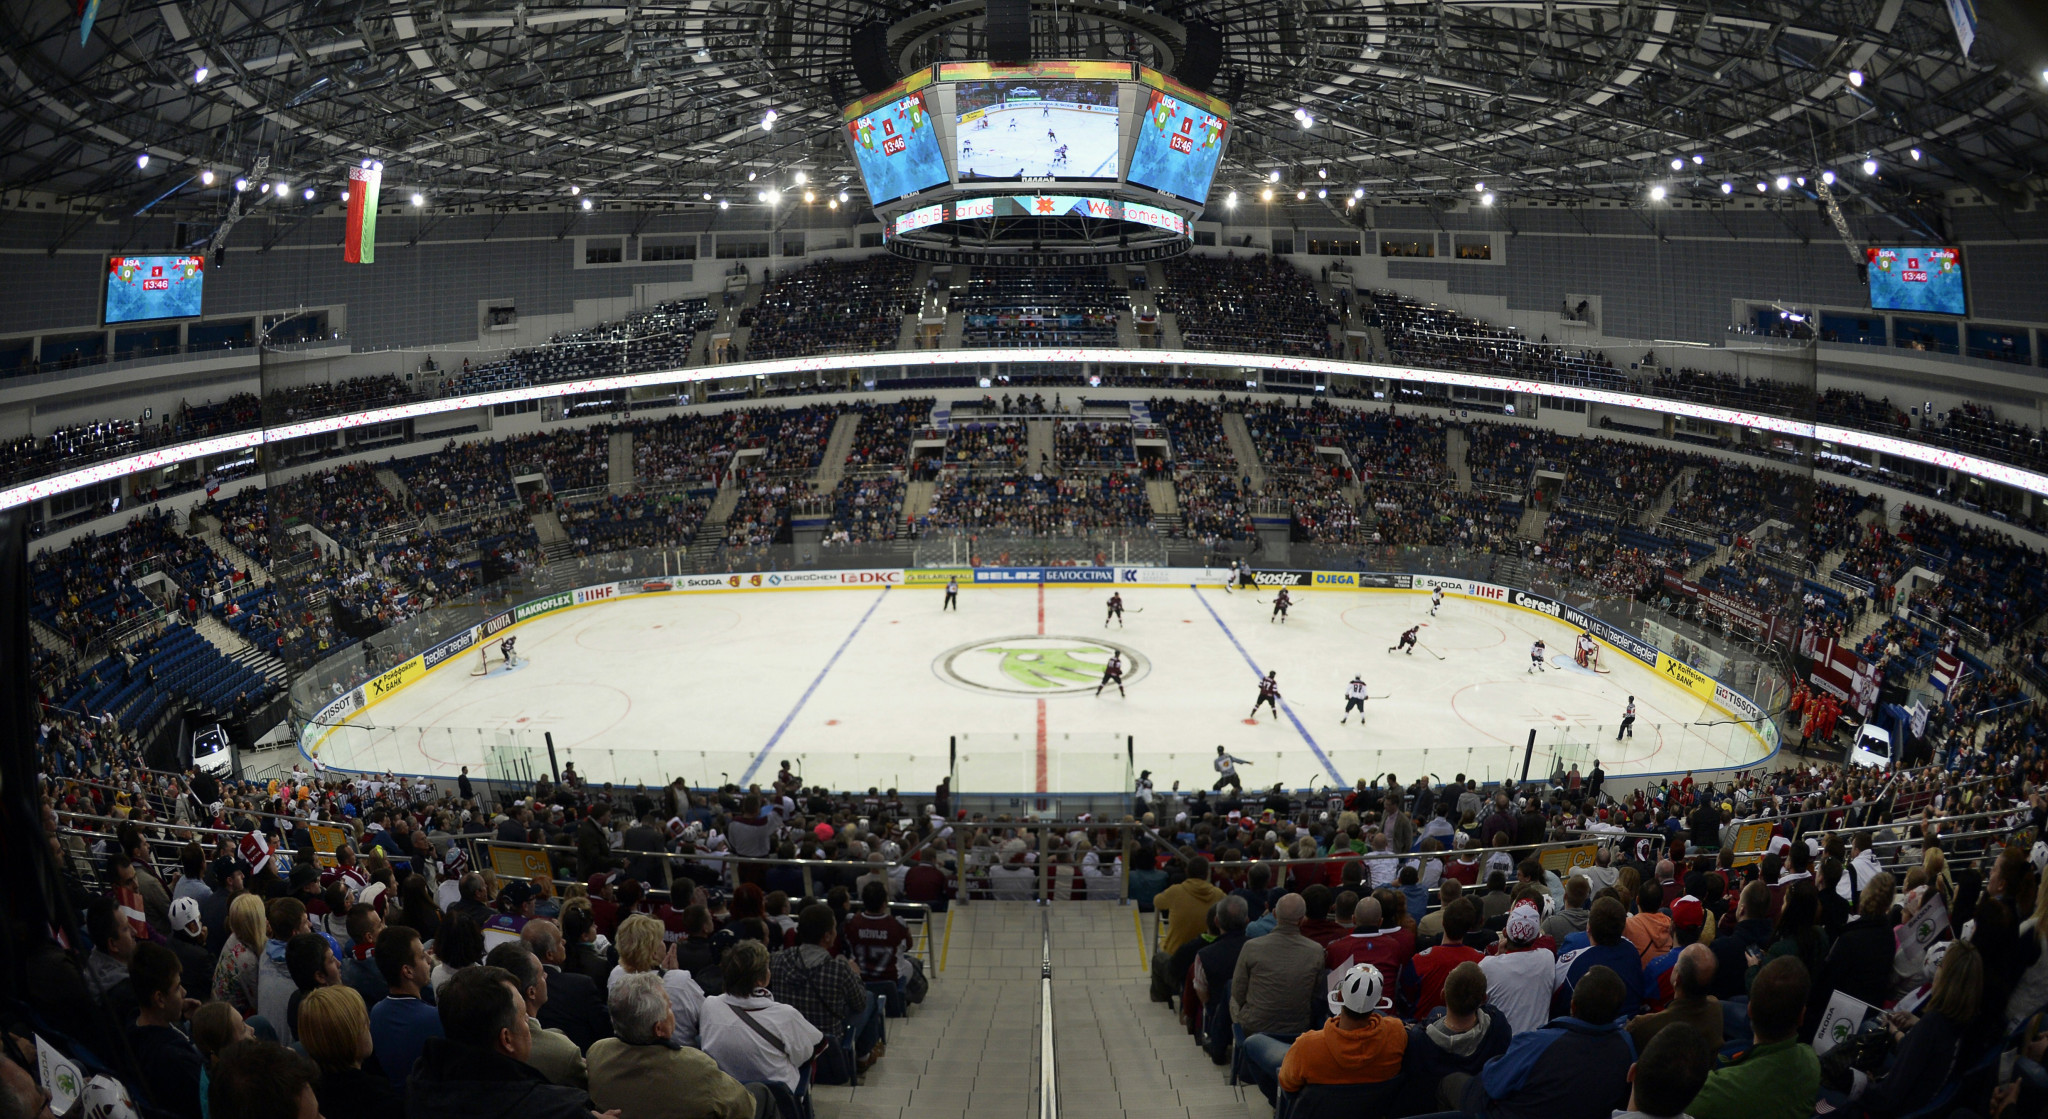 The Arena Minsk will host the 2021 World Championship final ©Getty Images